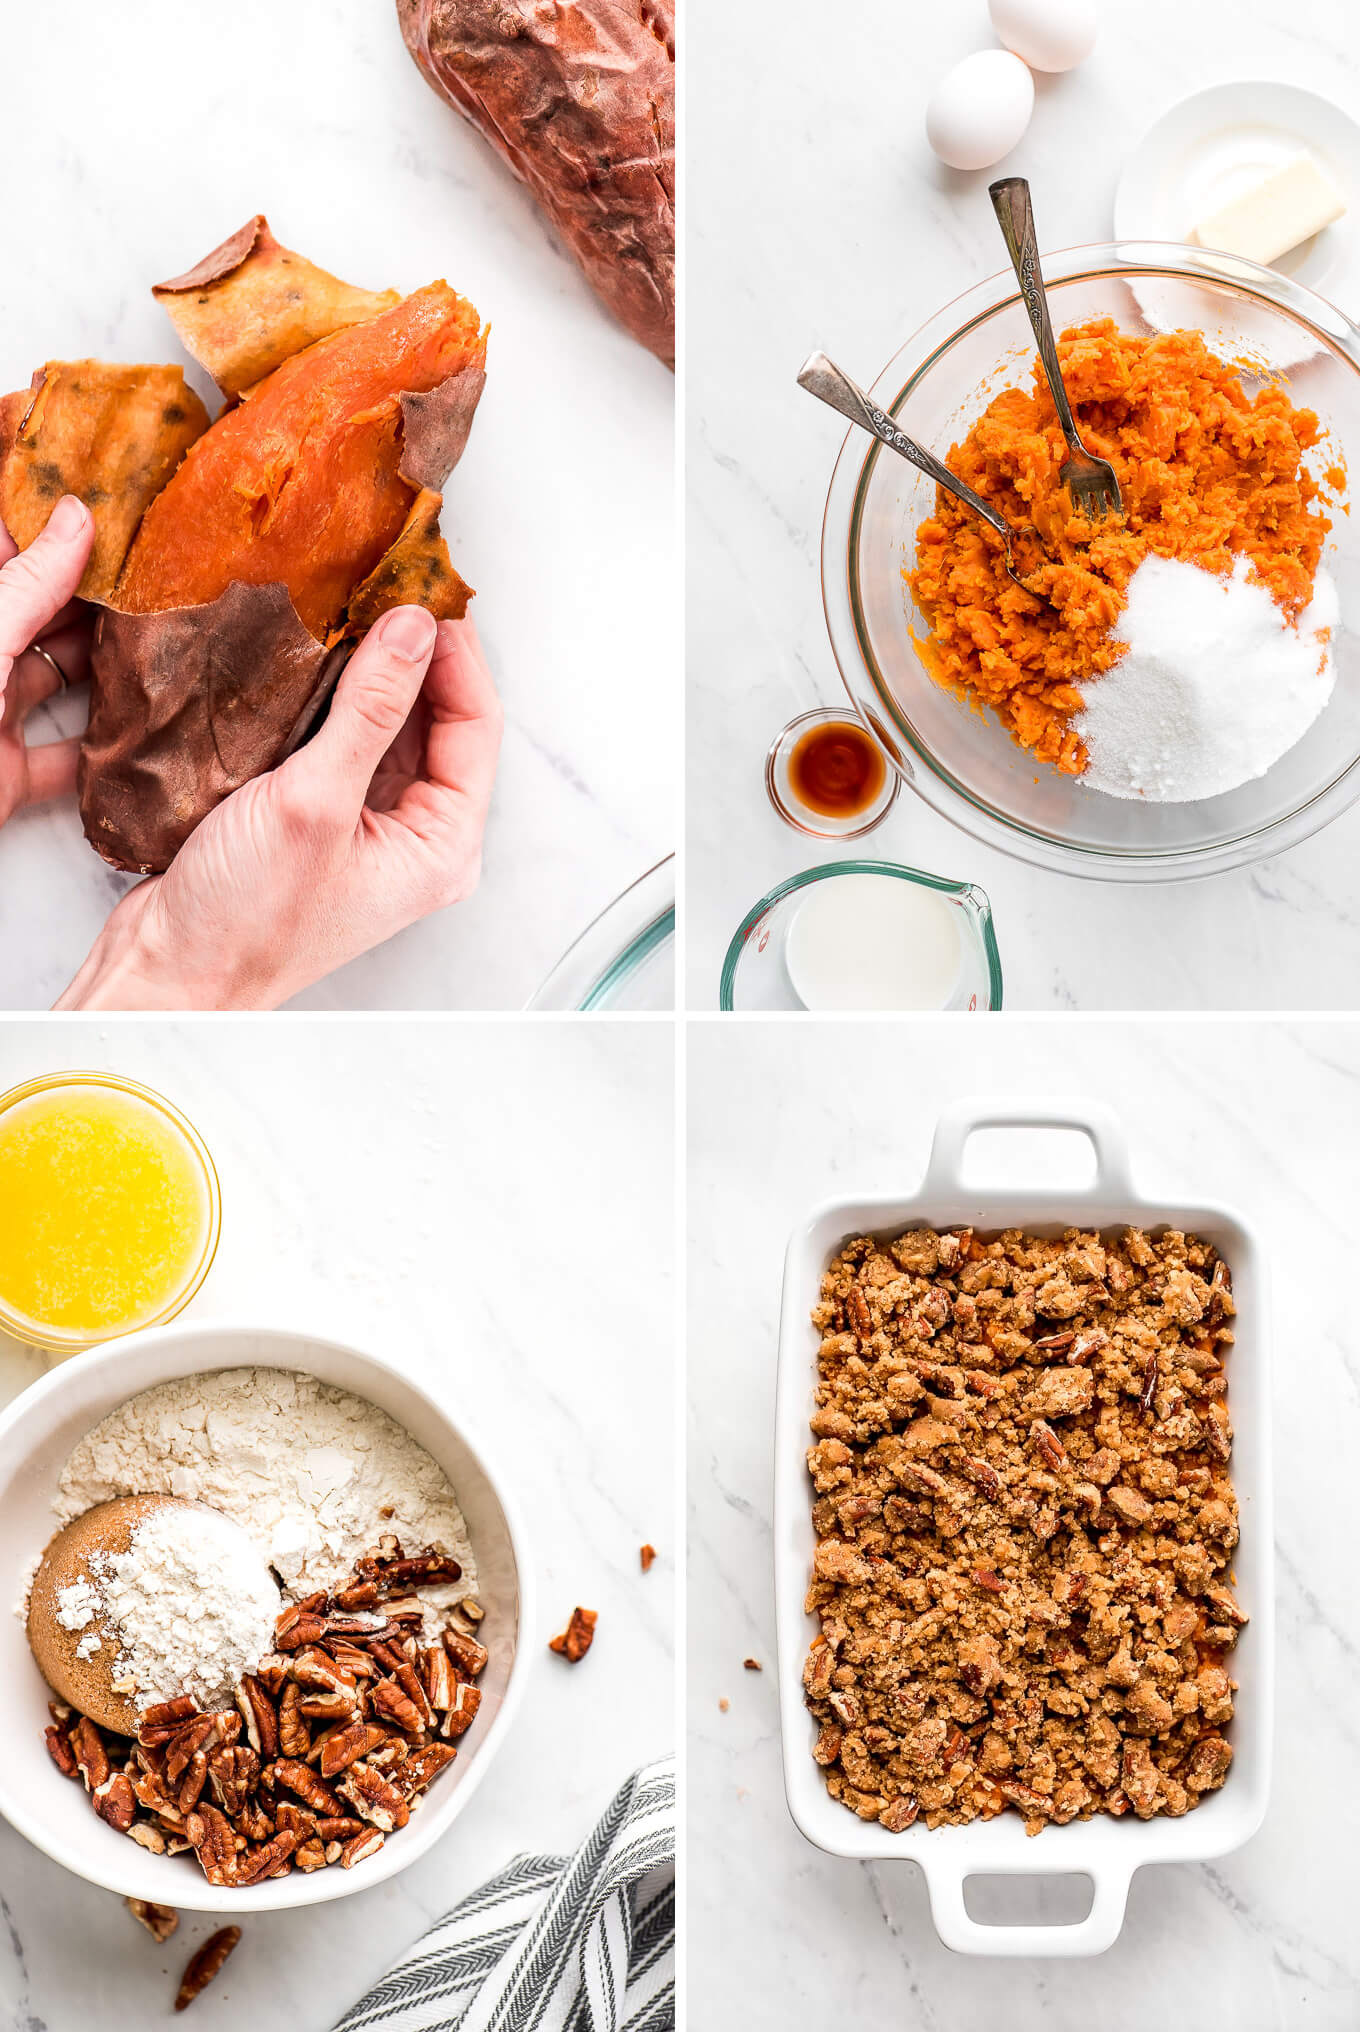 Steps of assembling sweet potato casserole.